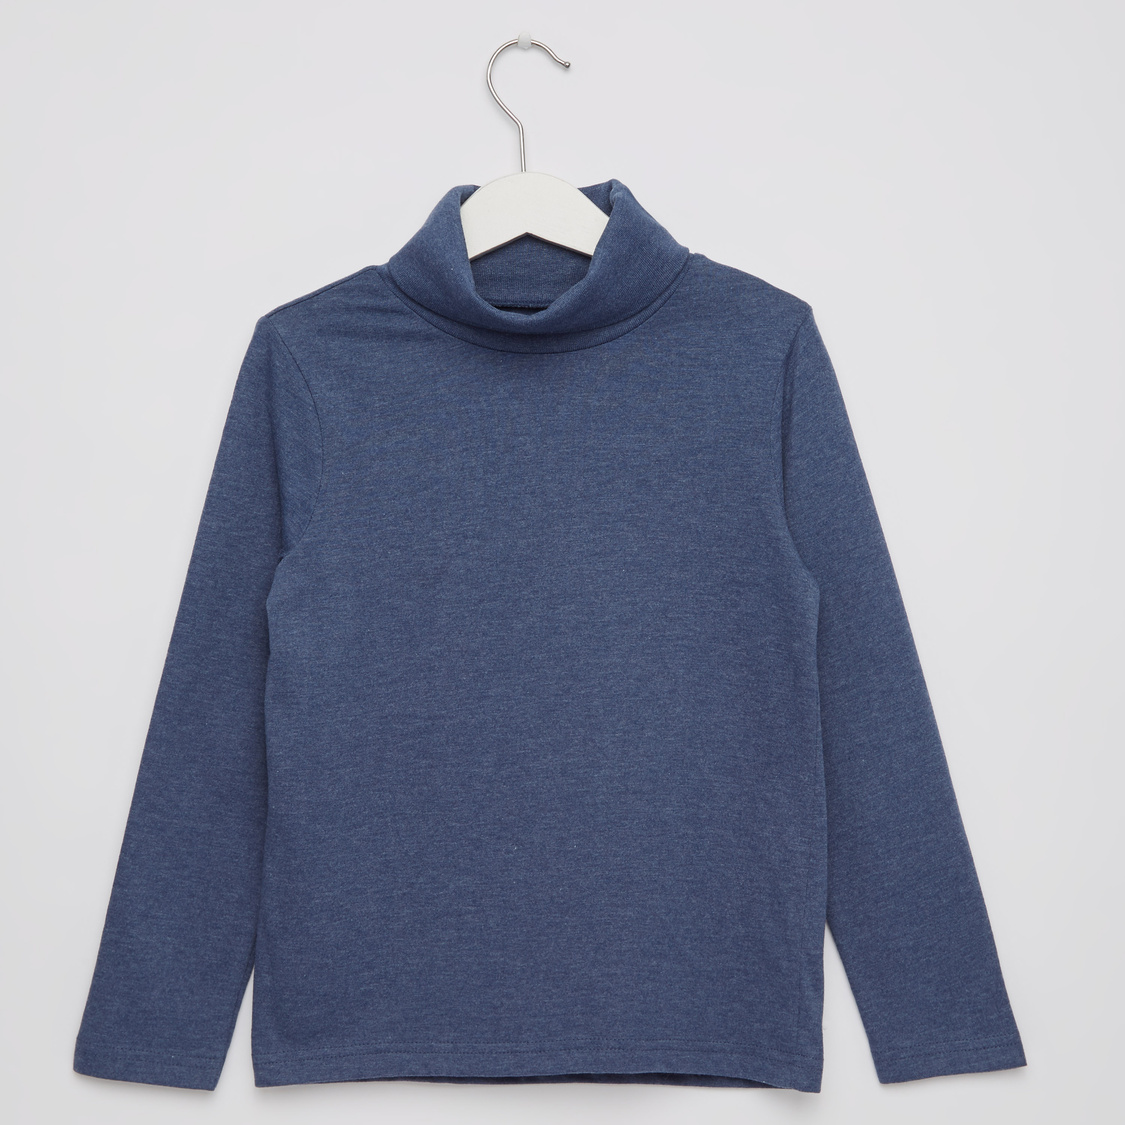 Solid Turtleneck T-shirt with Long Sleeves